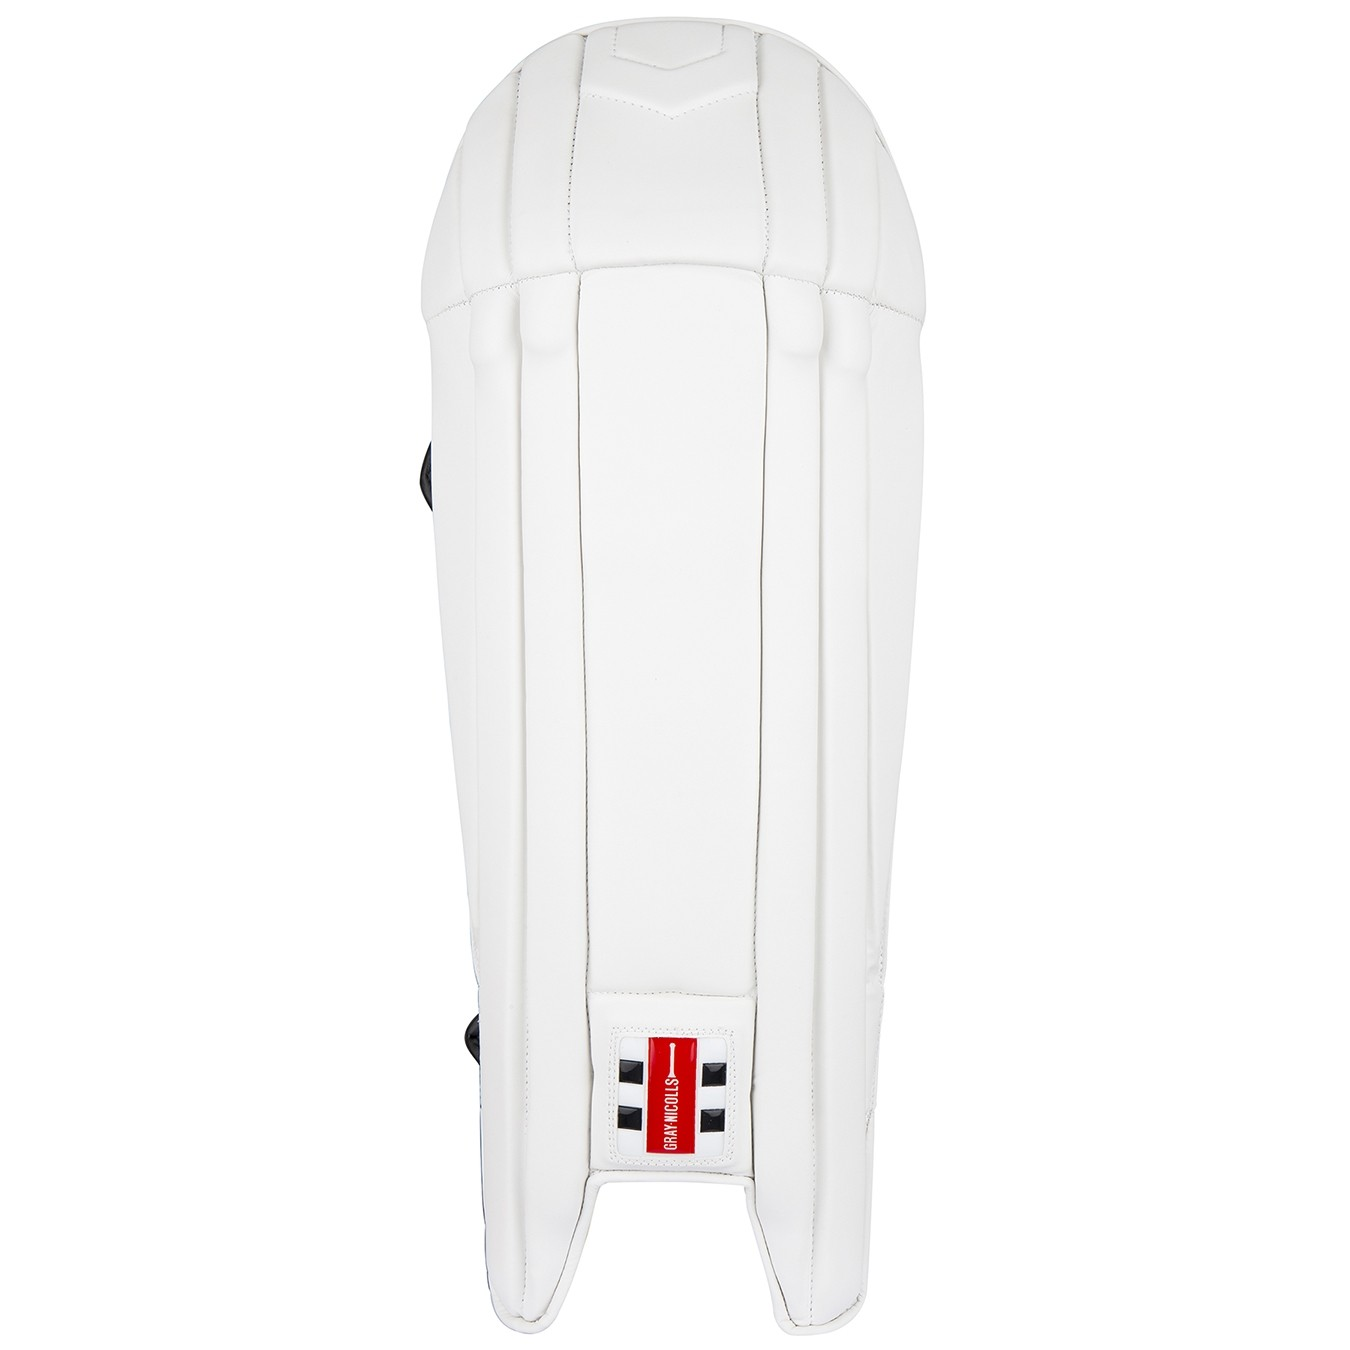 2020 Gray Nicolls Powerbow Inferno Wicket Keeping Pads